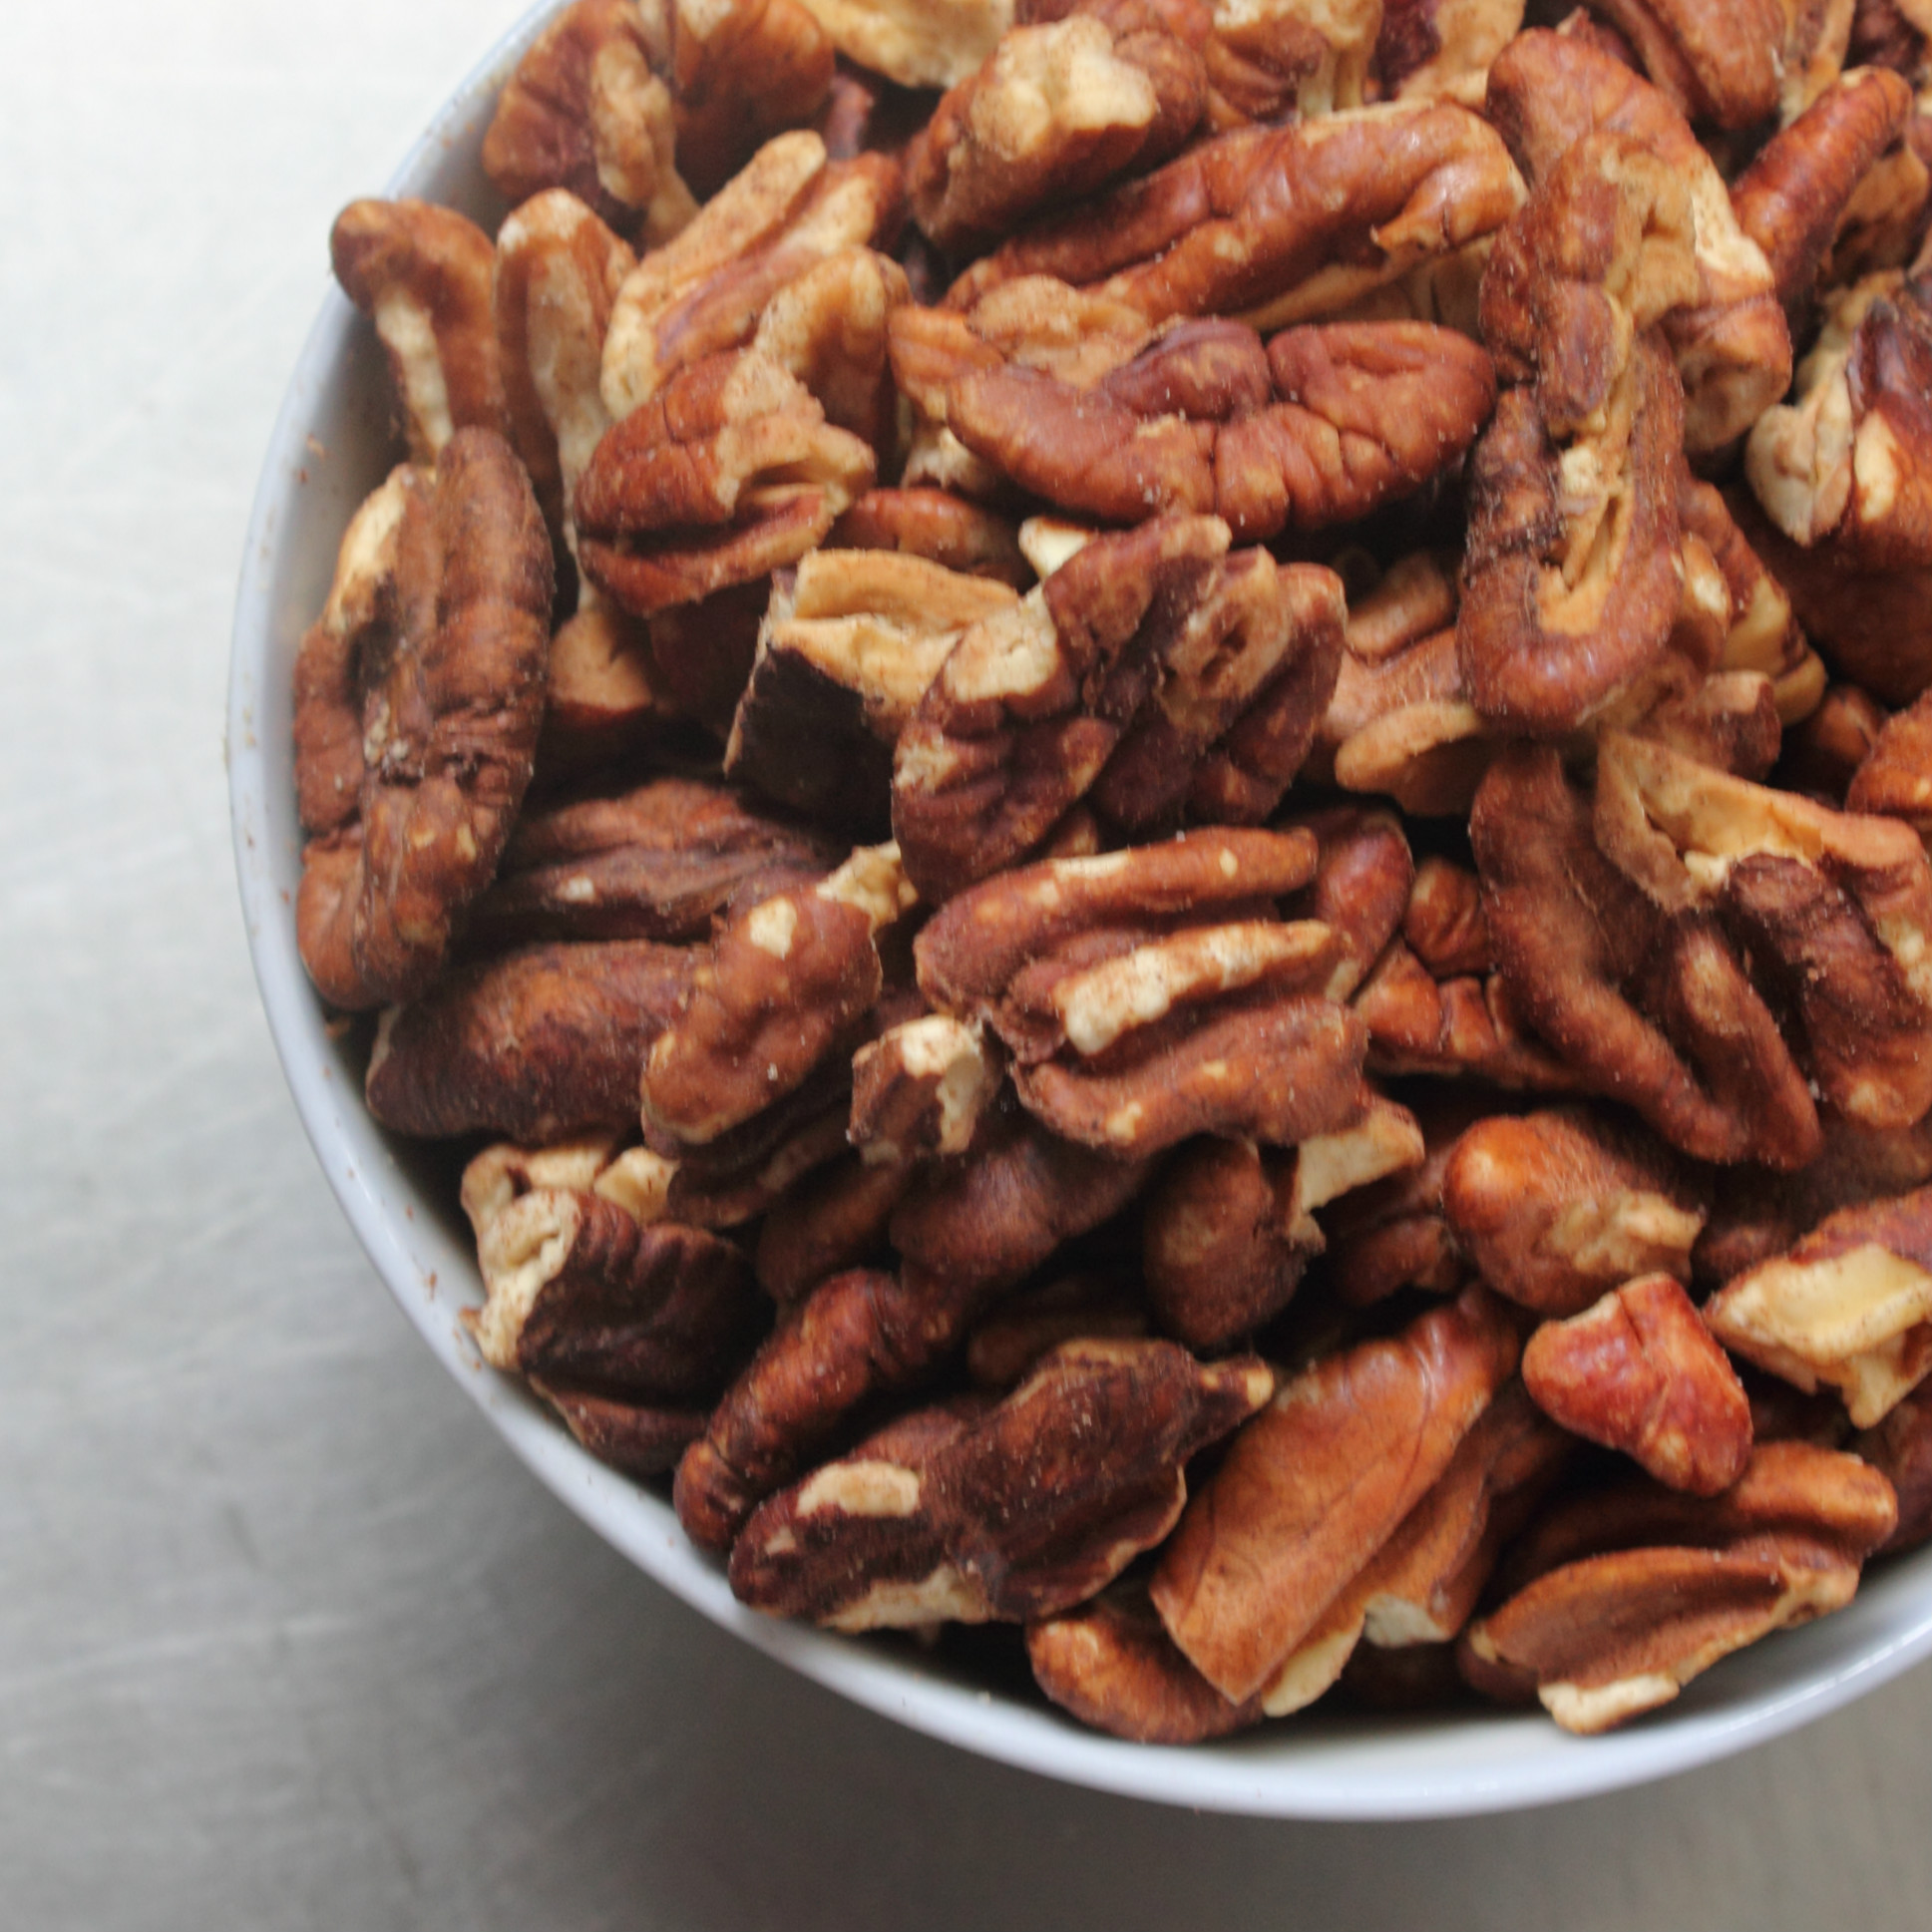 [special price everyday] Bigen nut chunks American hickory kernels chopped kernels chopped longevity kernels two pack mail